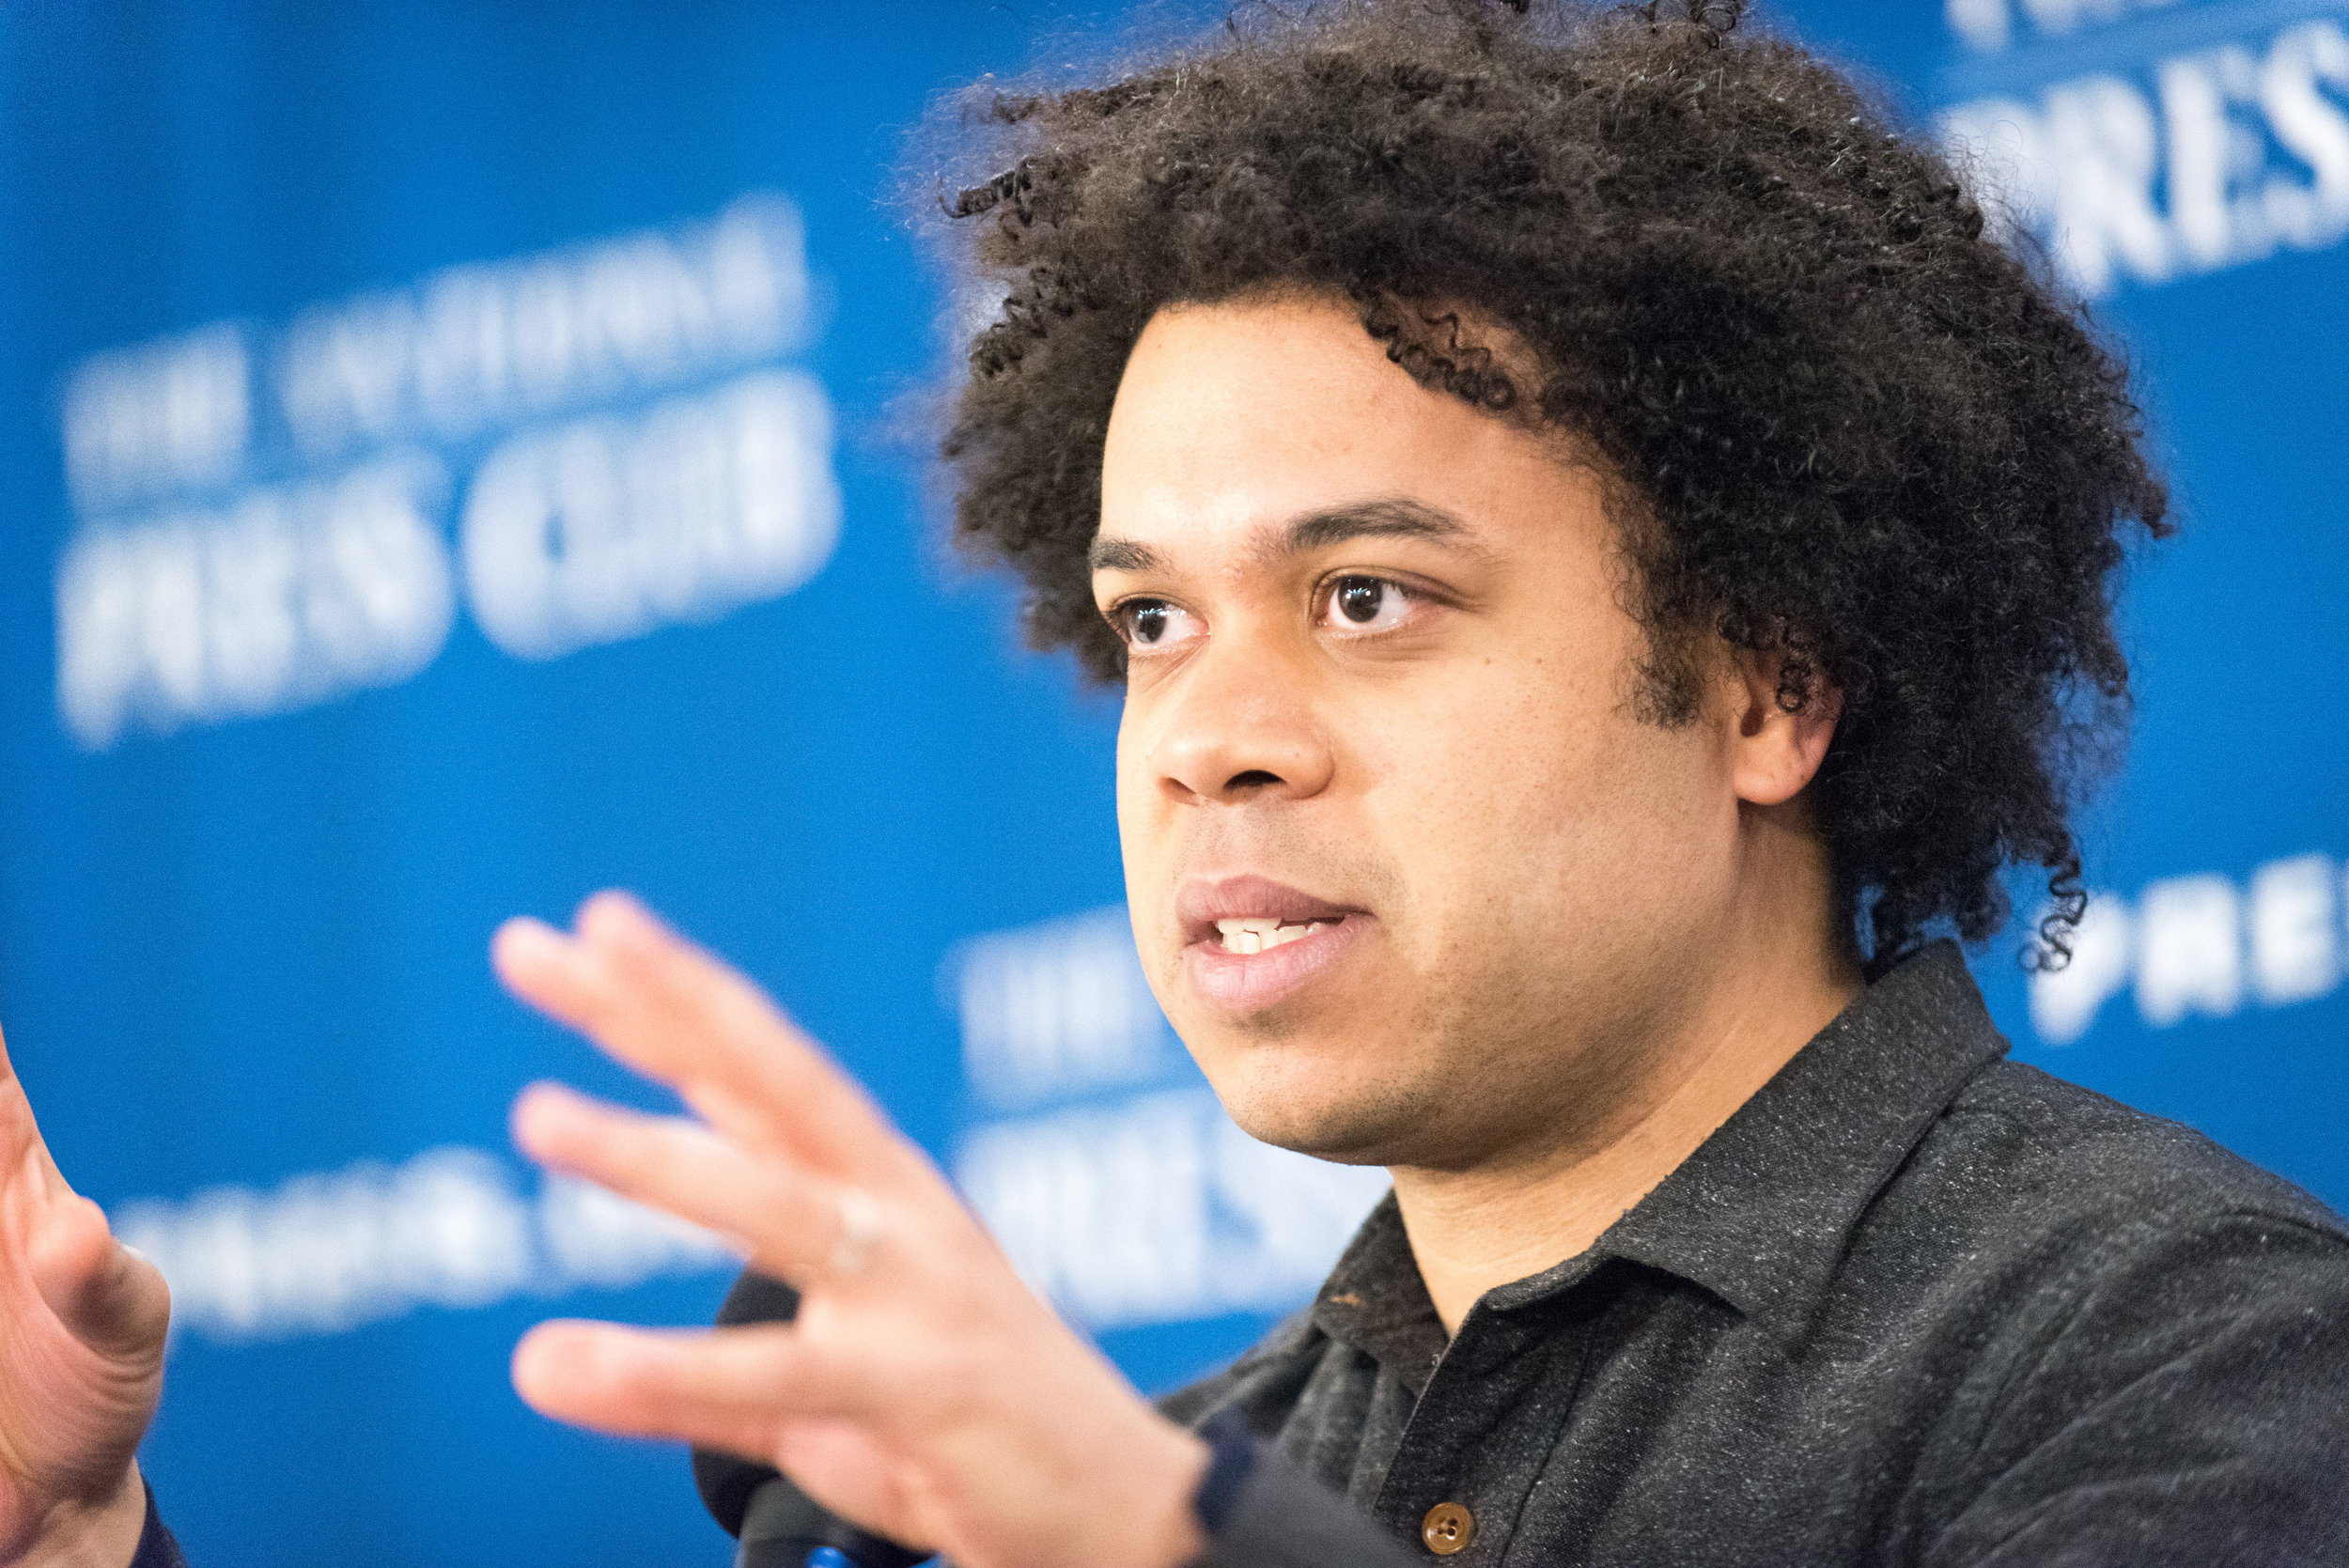 Micah White at Press Club.jpg